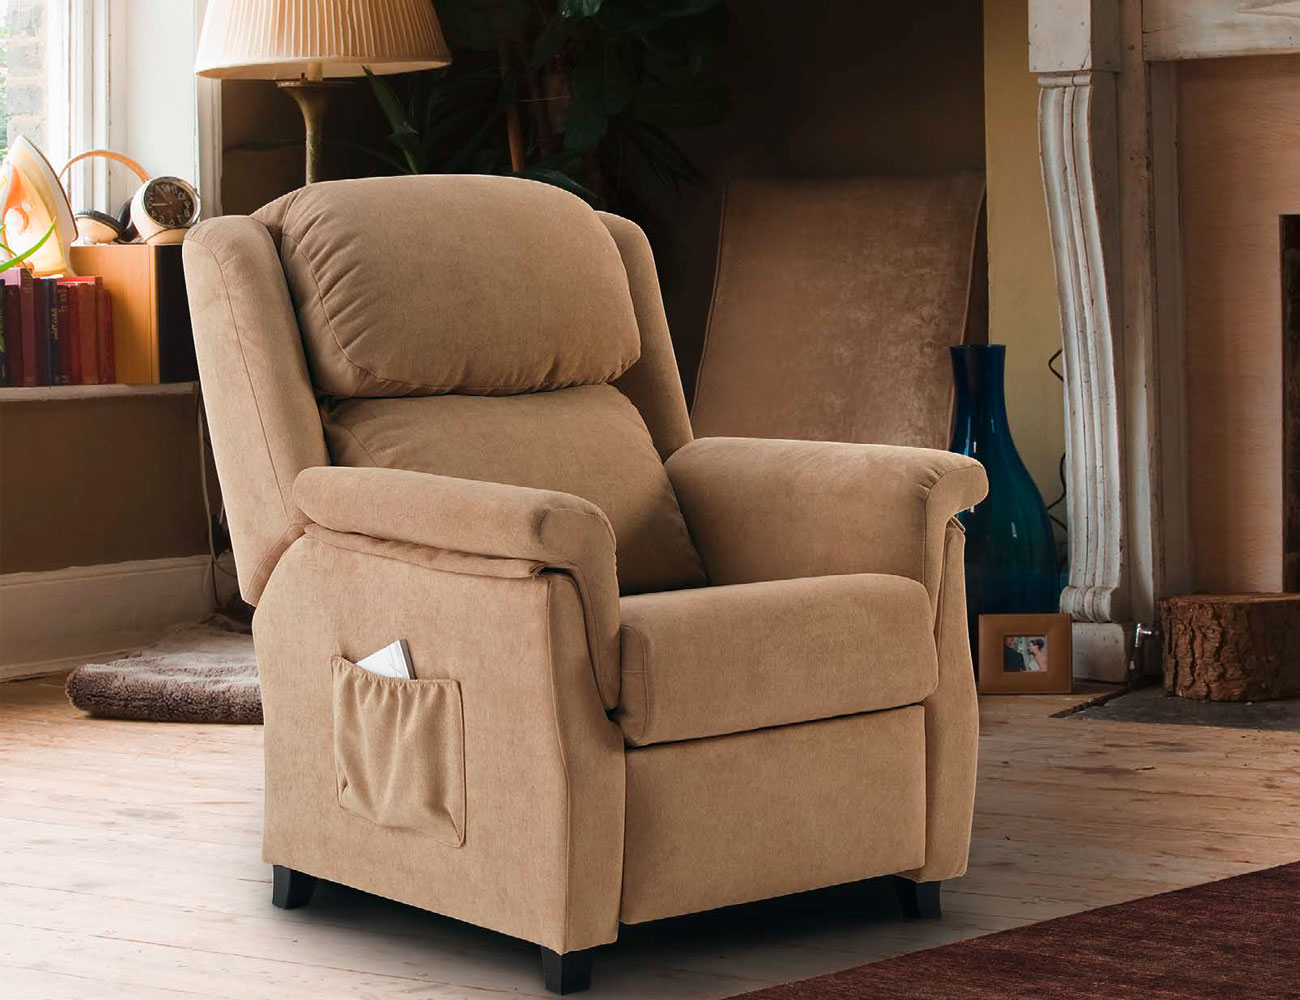 Sillon relax manual bianca 120